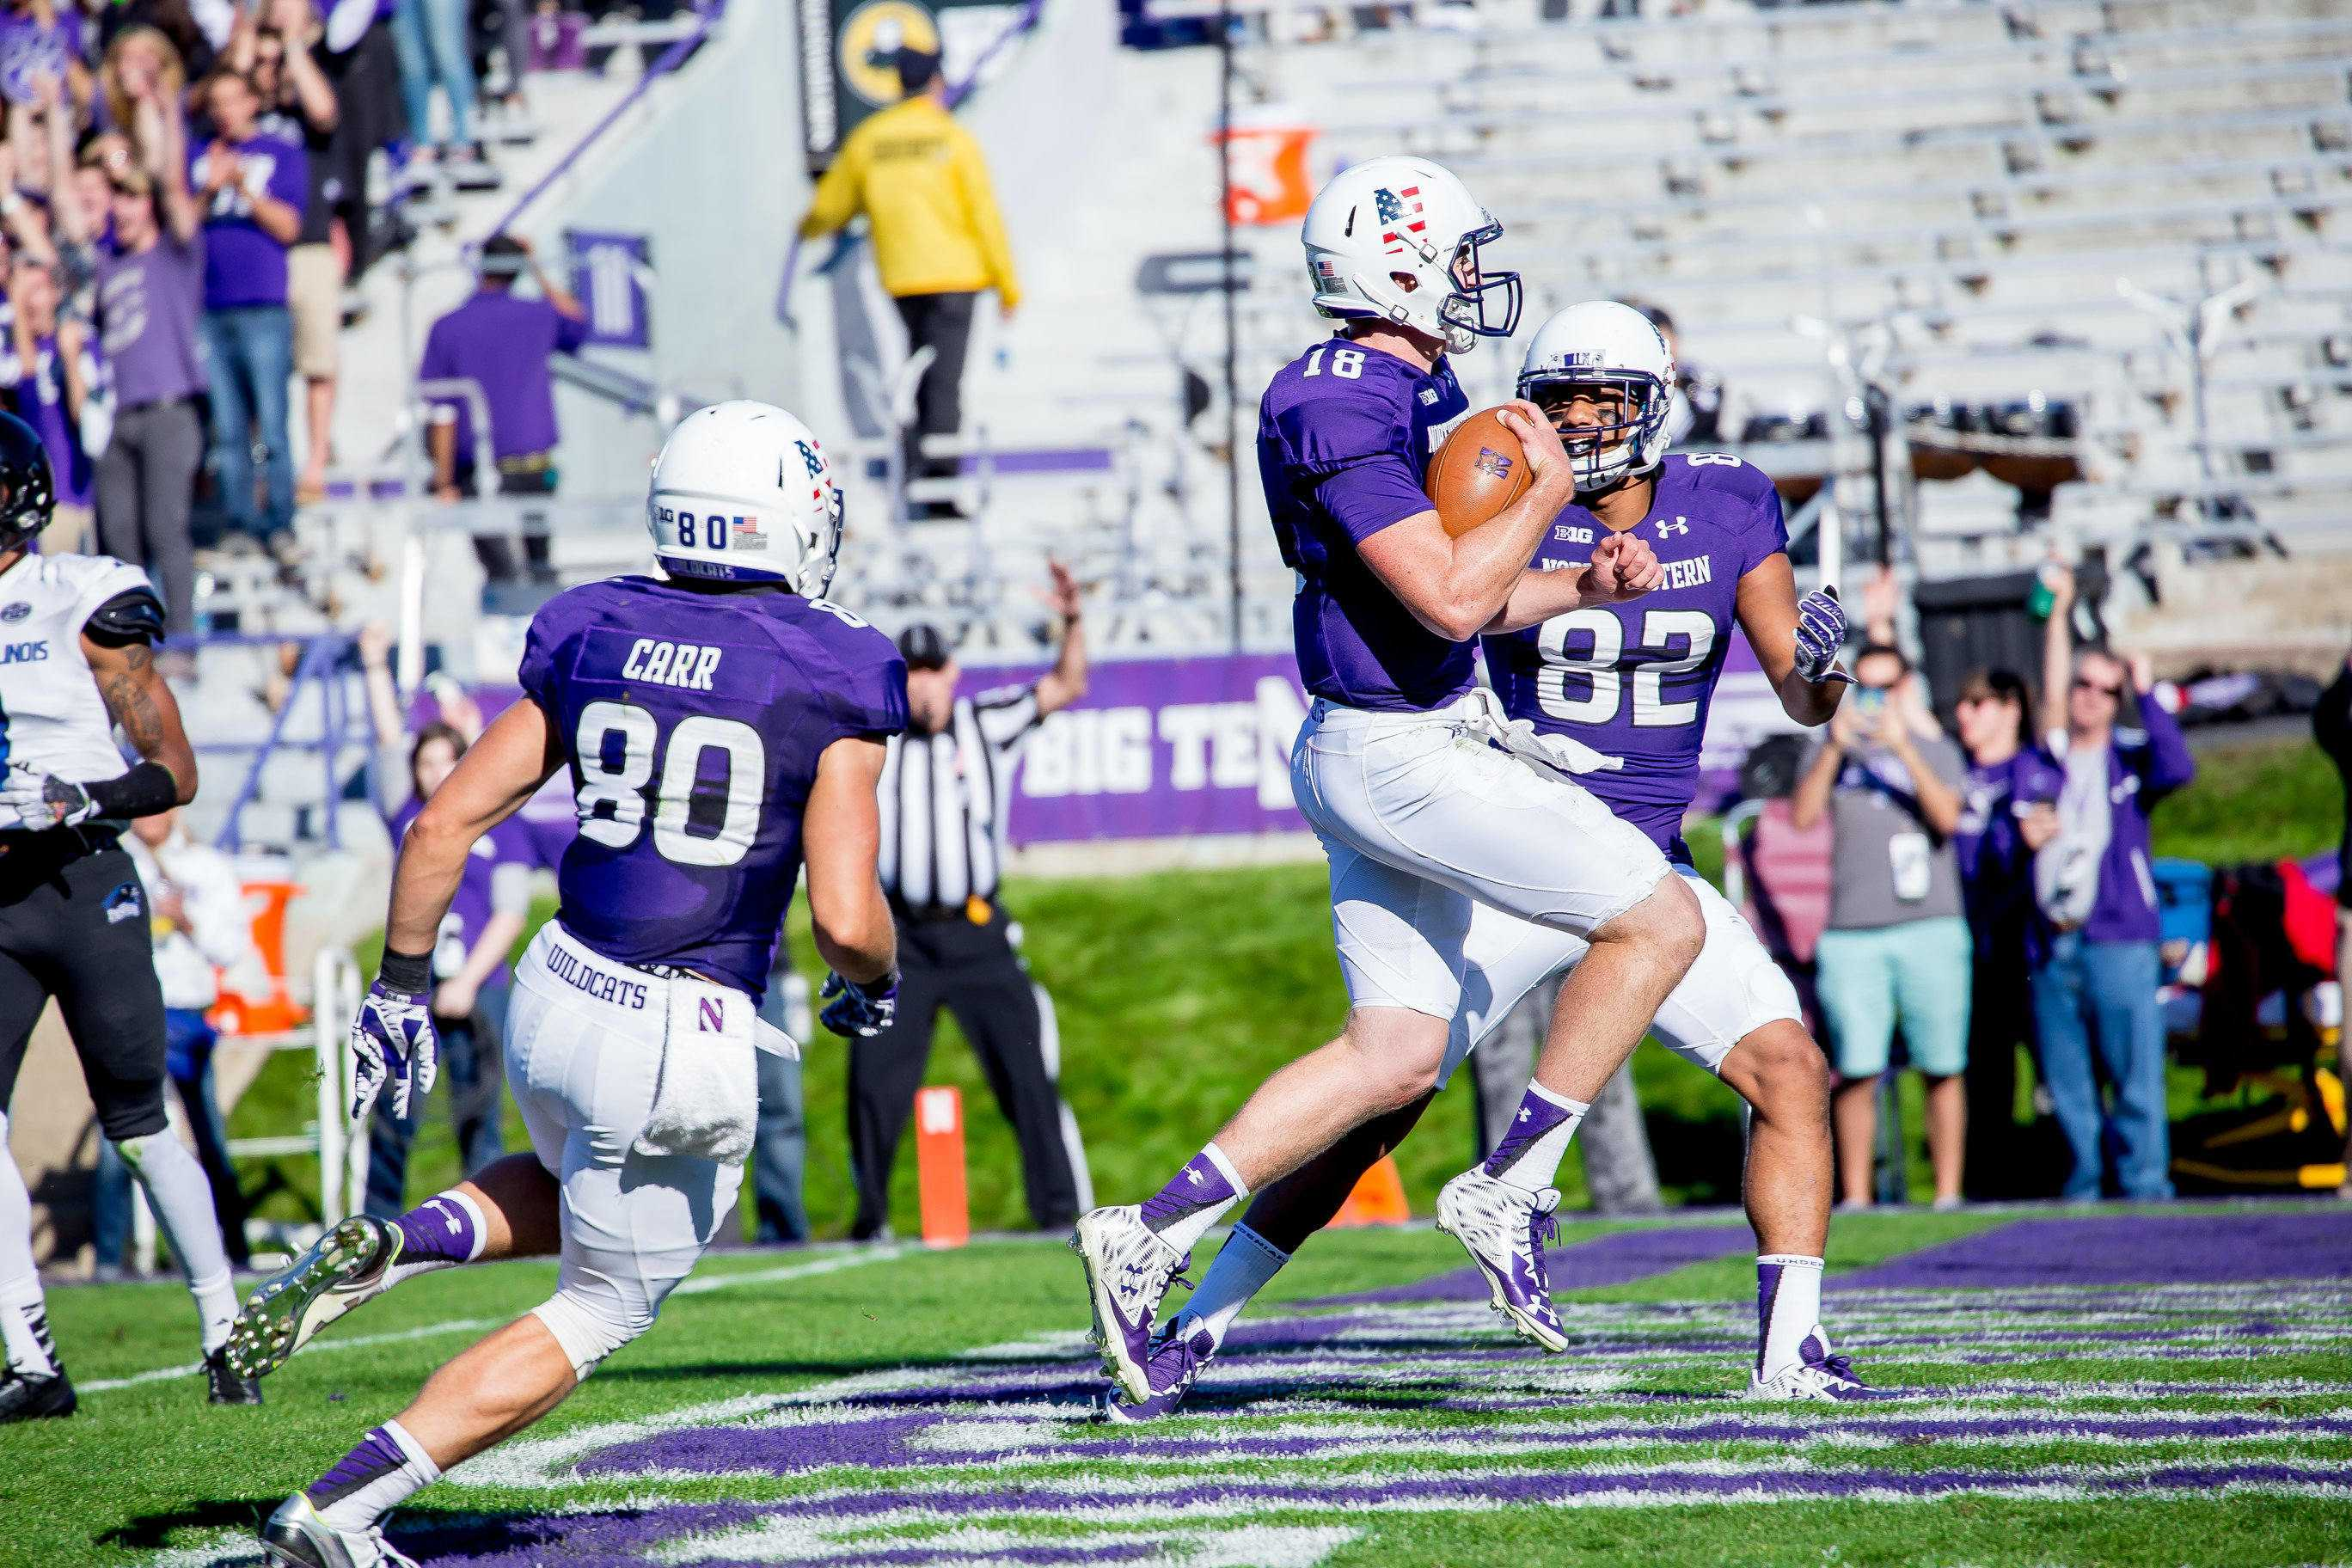 Redshirt freshman quarterback Clayton Thorson celebrates in the end zone following his second rushing touchdown of the season. Thorson also threw for a score in Northwestern's 41-0 win.